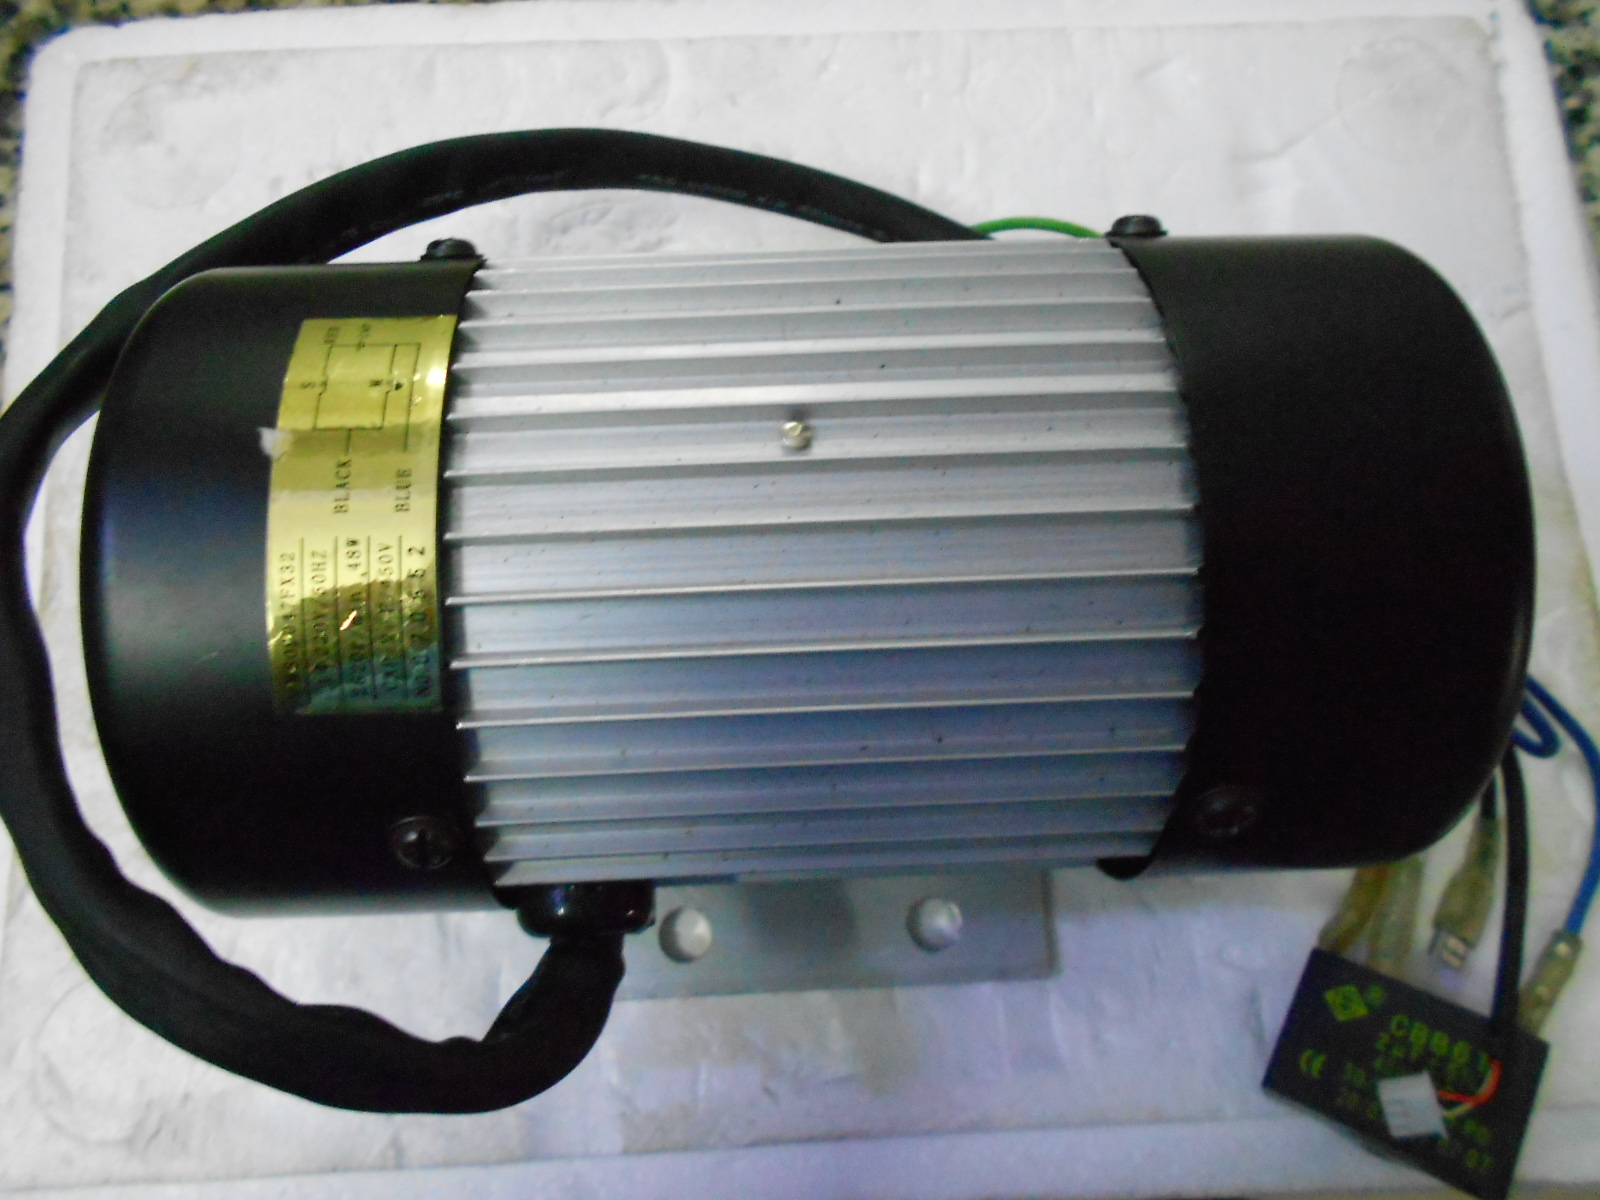 220V 50Hz 48W massager motor diameter 10cm, length 18.5cm with 450v, 2uf capacitor cbb60 10uf 450v 50hz 60hz motor running start capacitor application washing machine